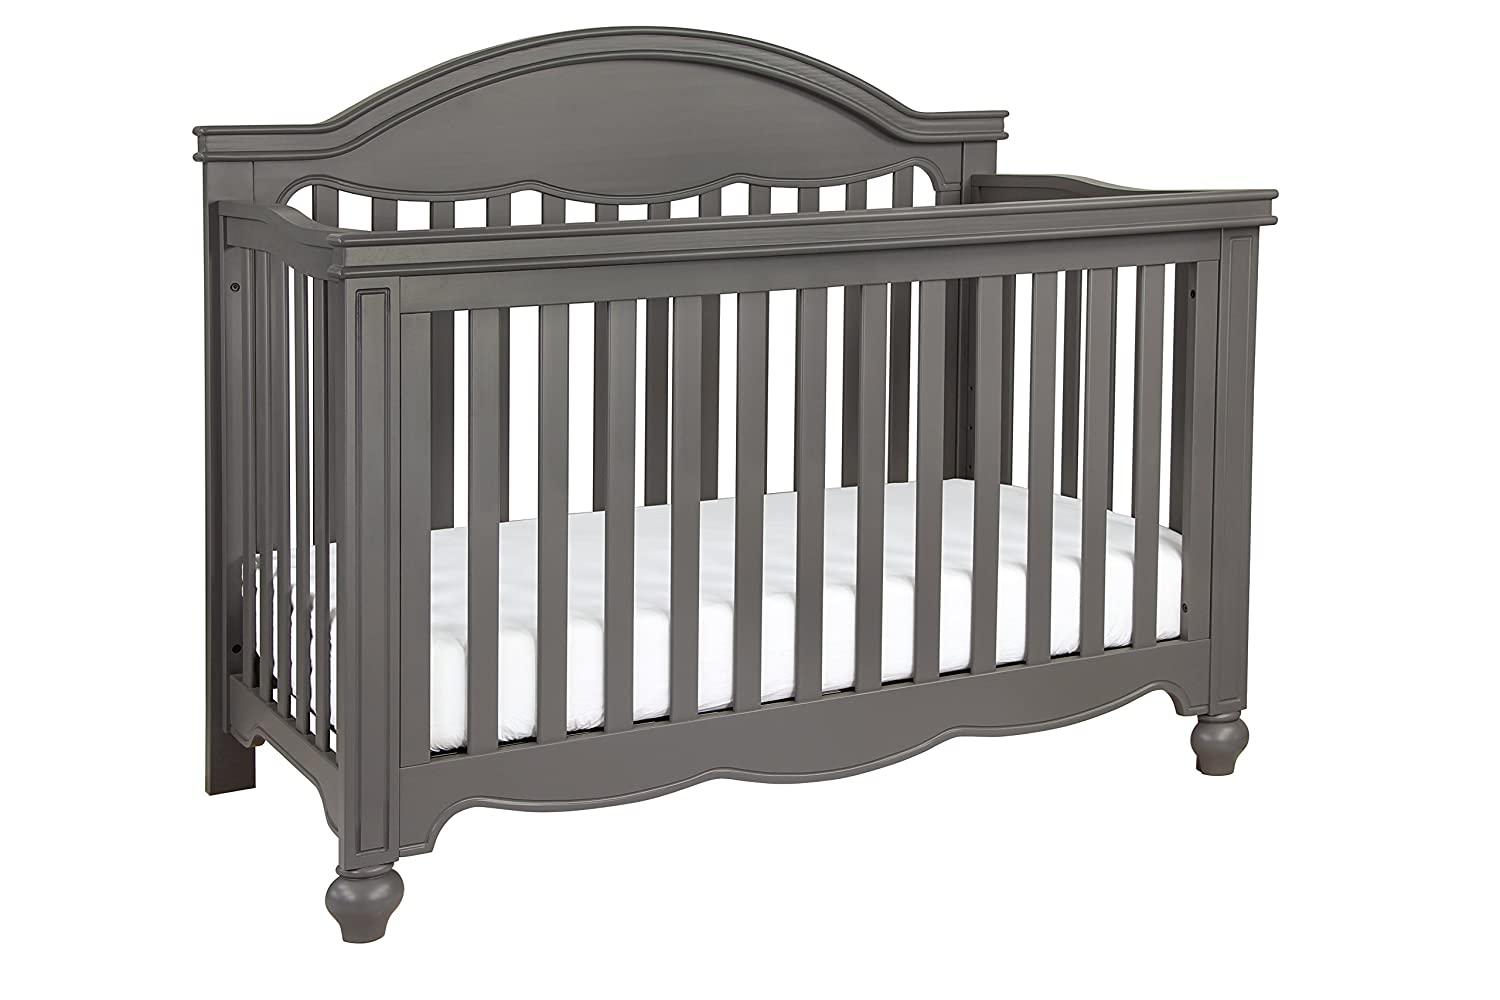 amazoncom million dollar baby classic etienne 4in1 convertible crib with toddler bed conversion kit manor grey baby